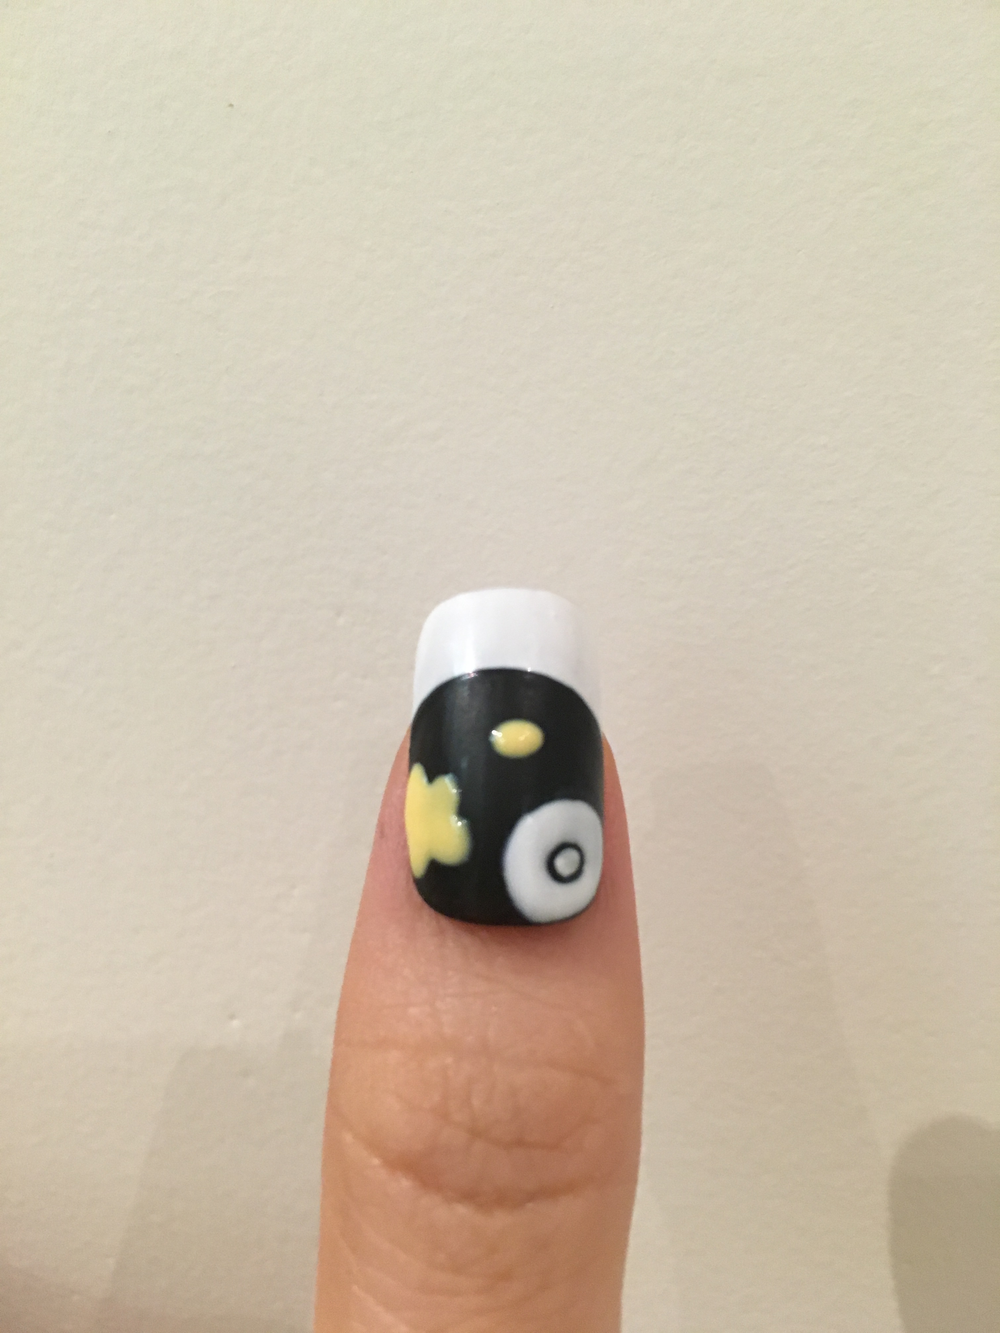 Draw a white dot on the bottom corner of the thumb, and draw a round circle around it. Draw a yellow dot and yellow petal on the same nail.